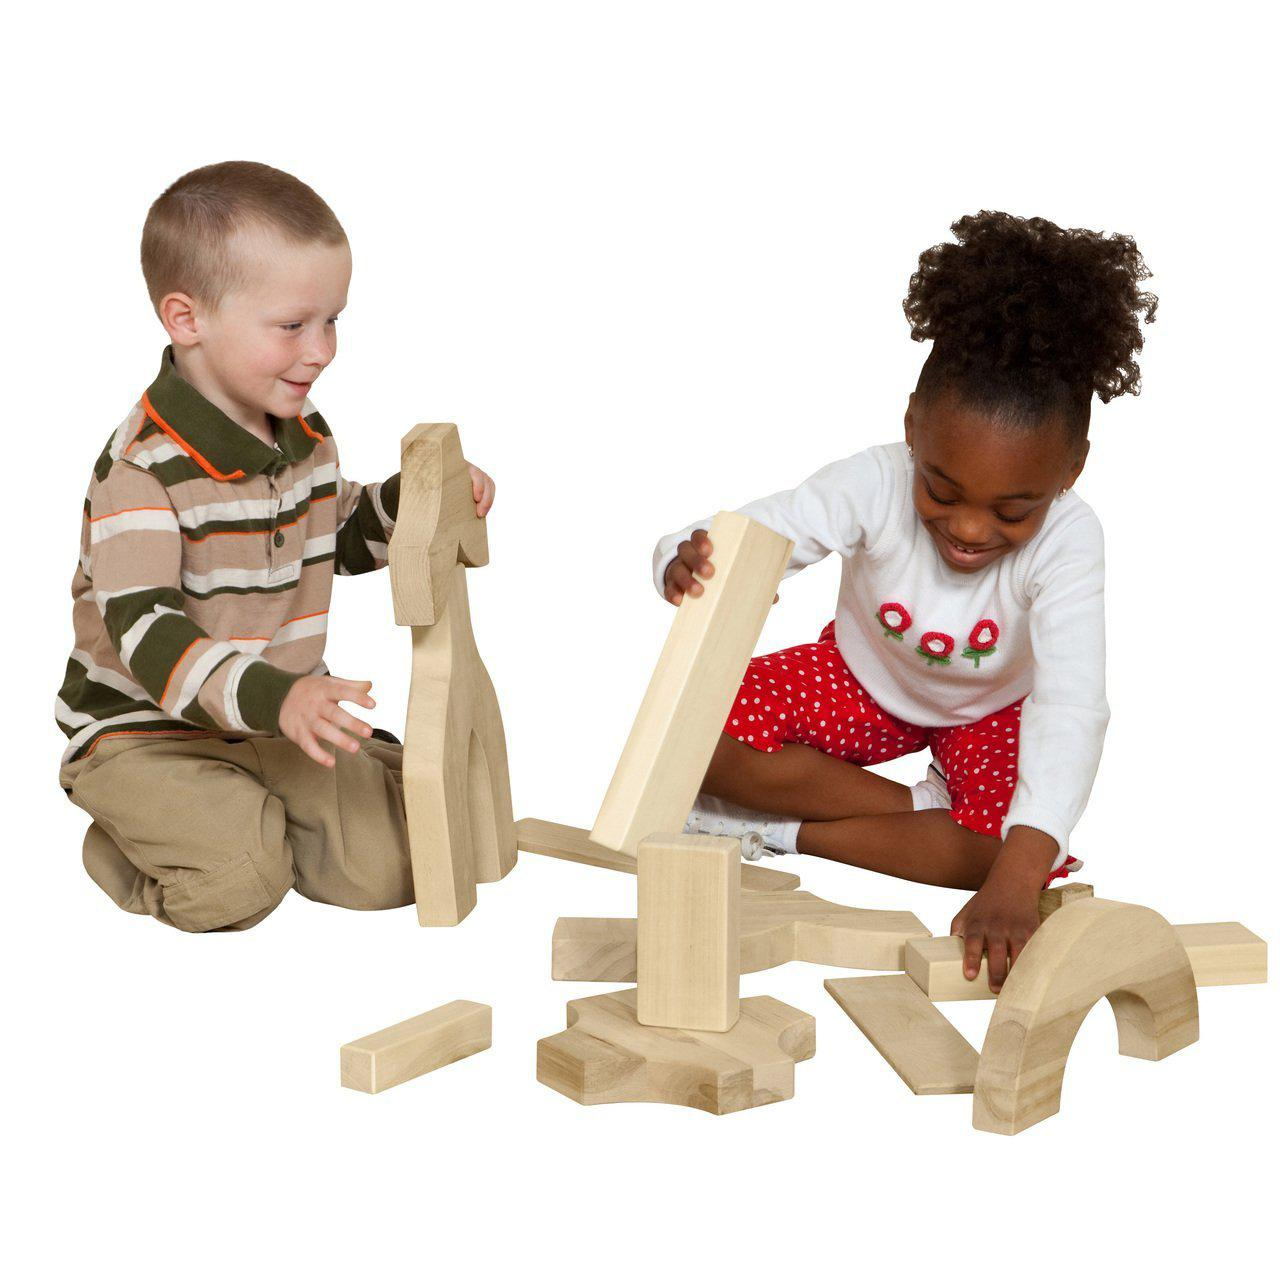 Wood Designs Kindergarten Blocks - 24 Shapes, 183 Pieces-Pre-School Furniture-